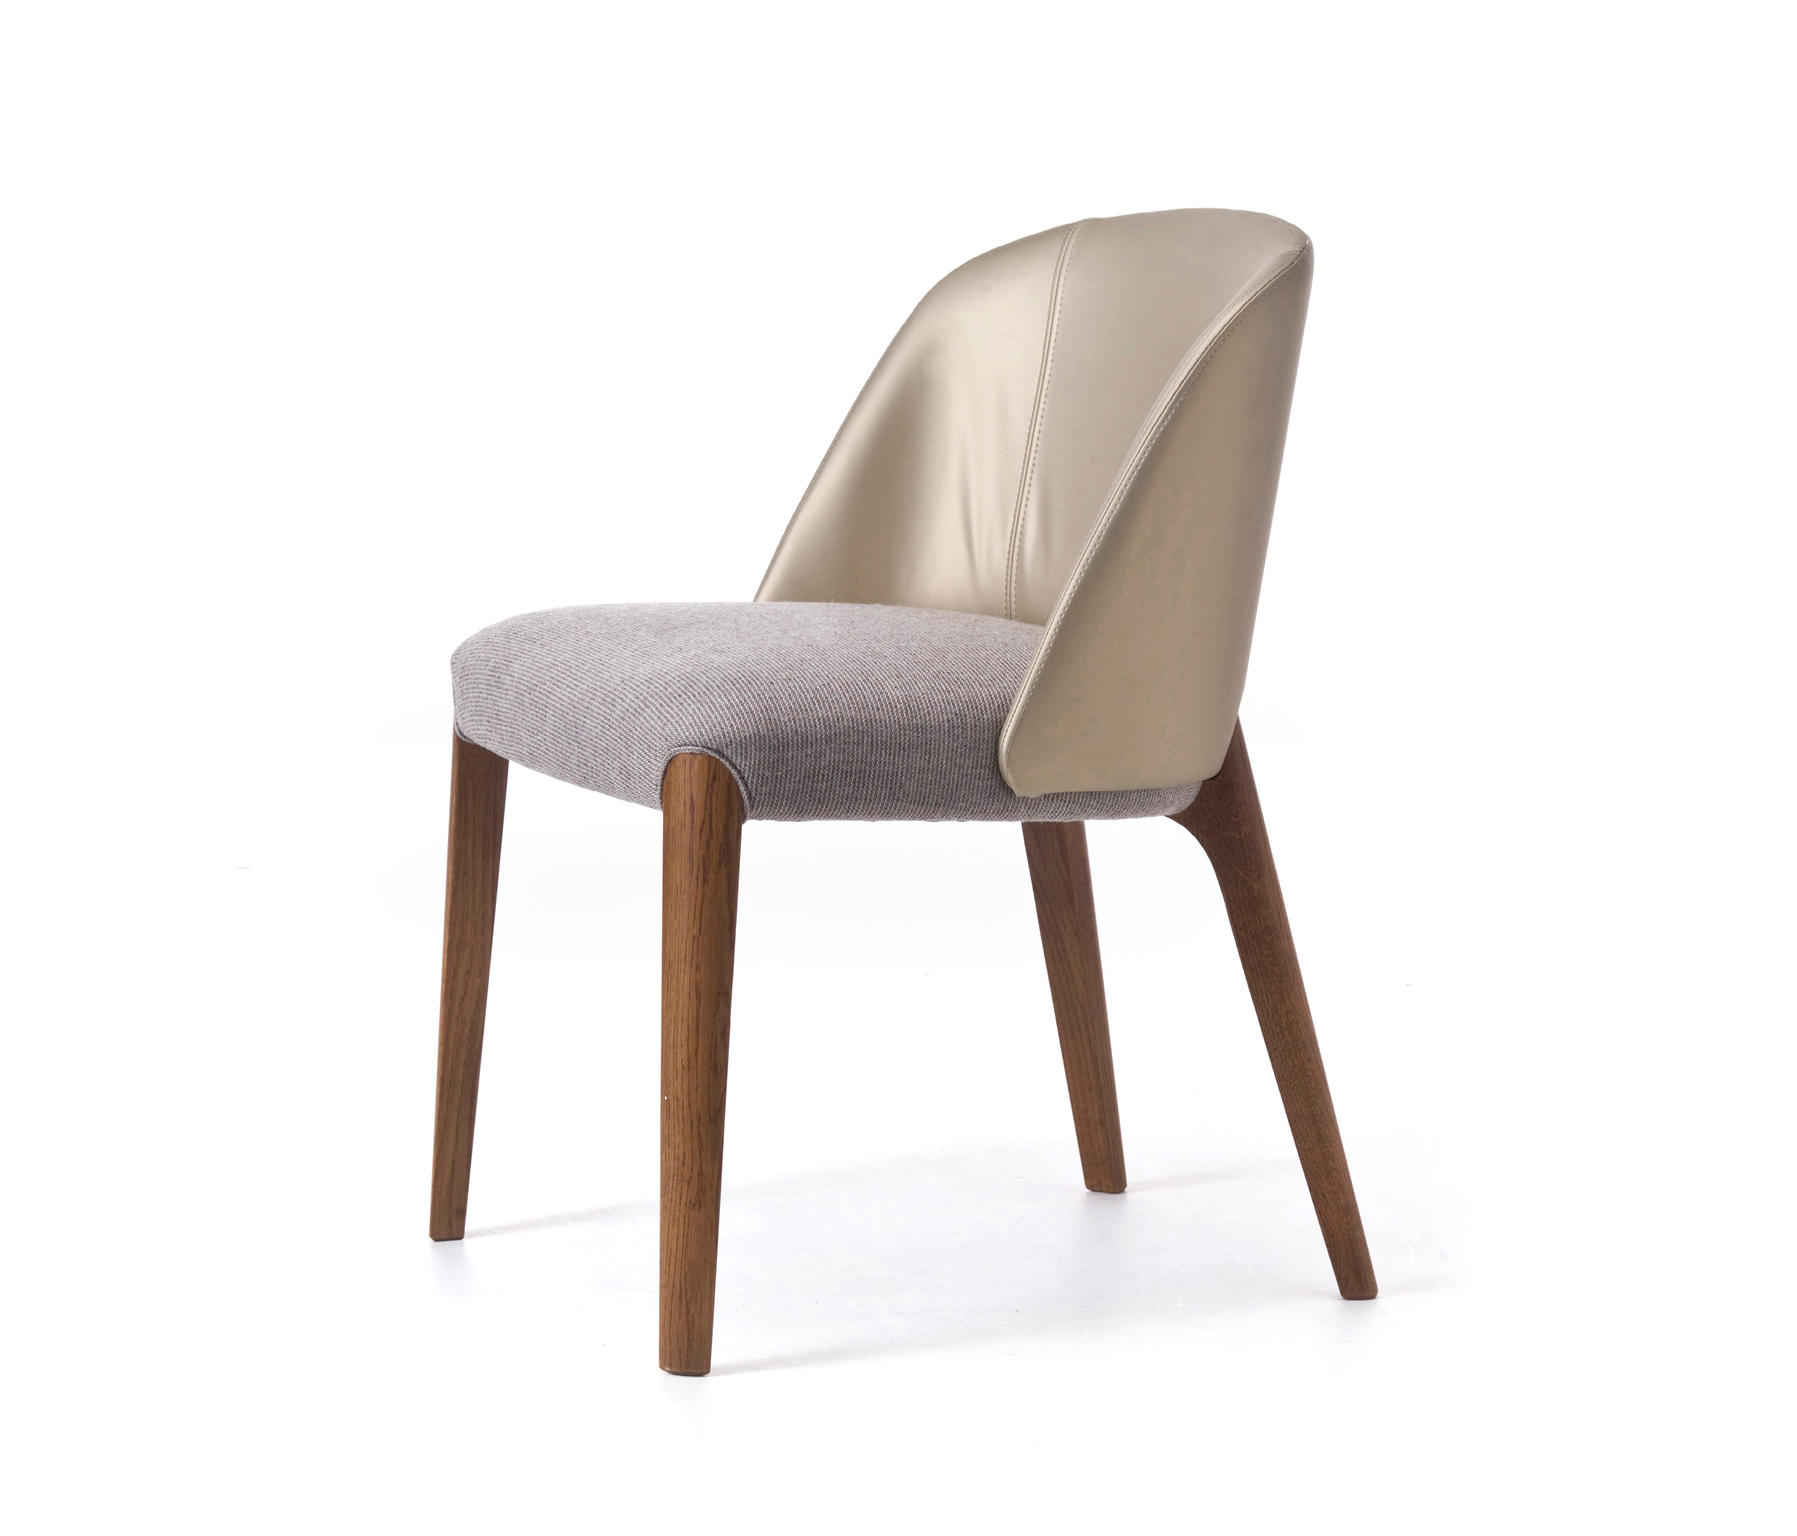 Bellevue 01 By Very Wood | Chairs ...